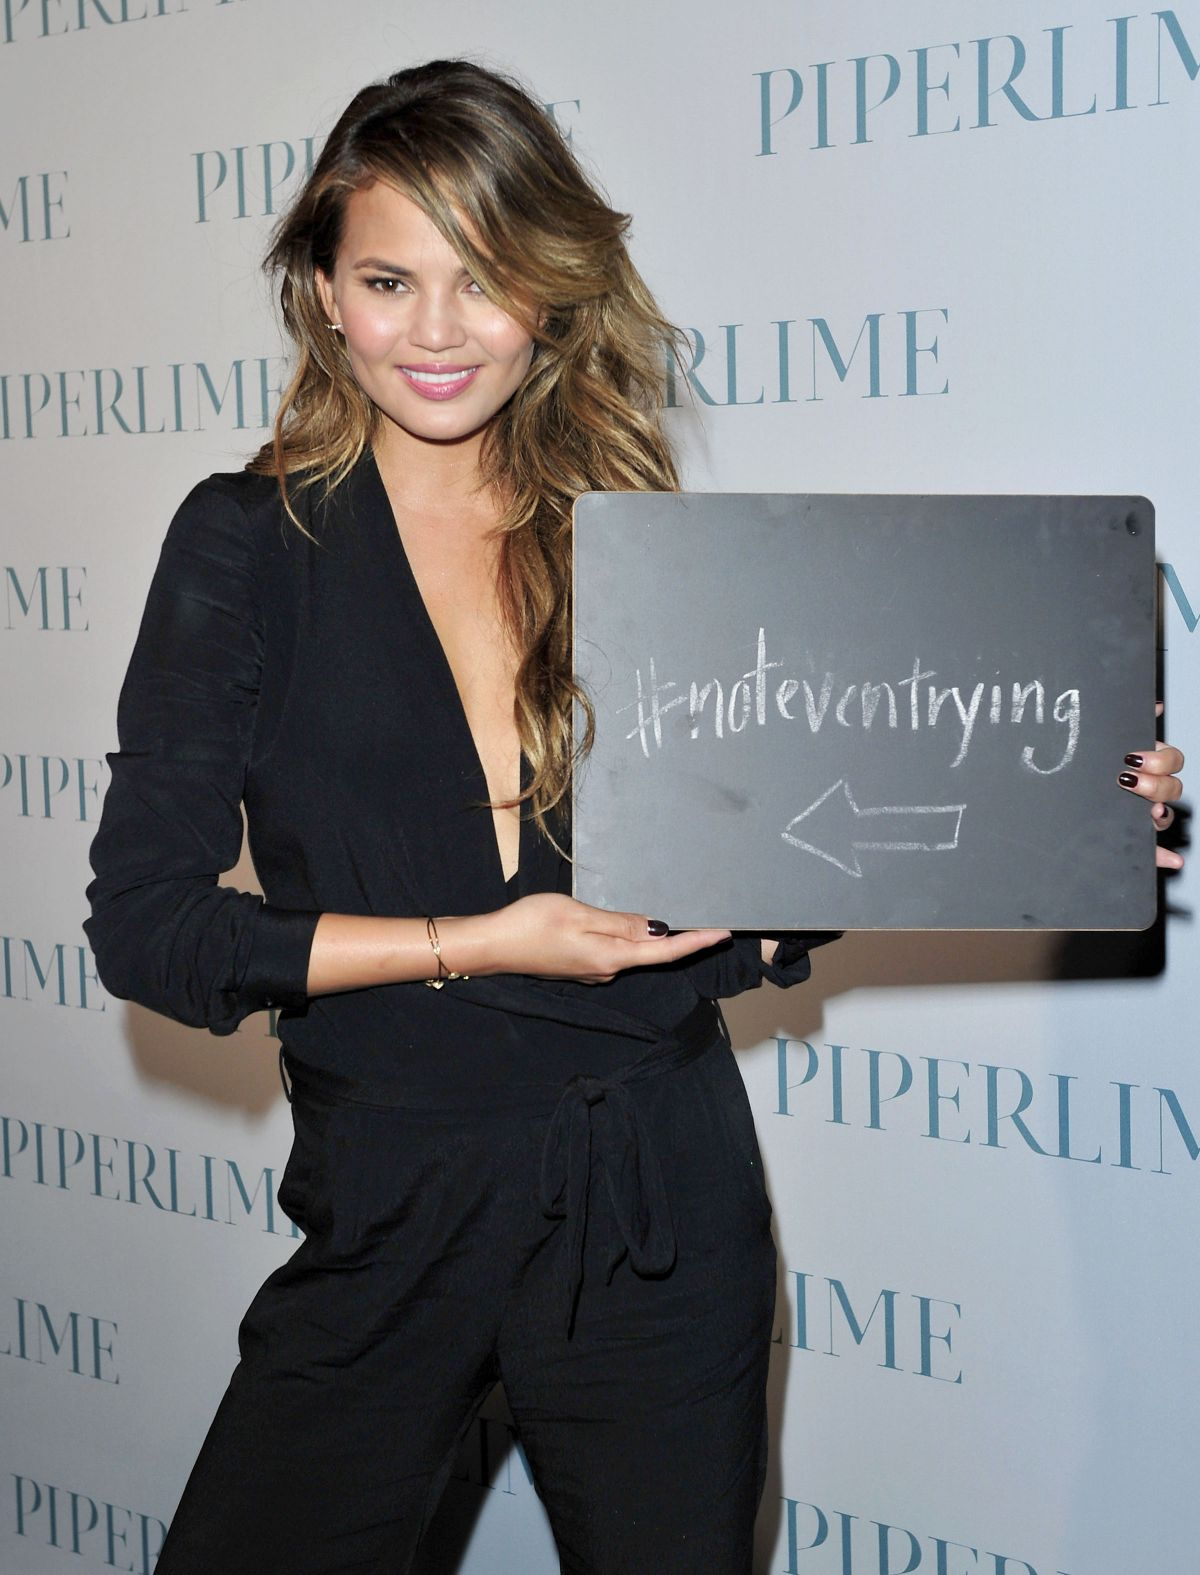 CHRISSY TEIGEN at New Piperlime Collection Launch in Los Angeles